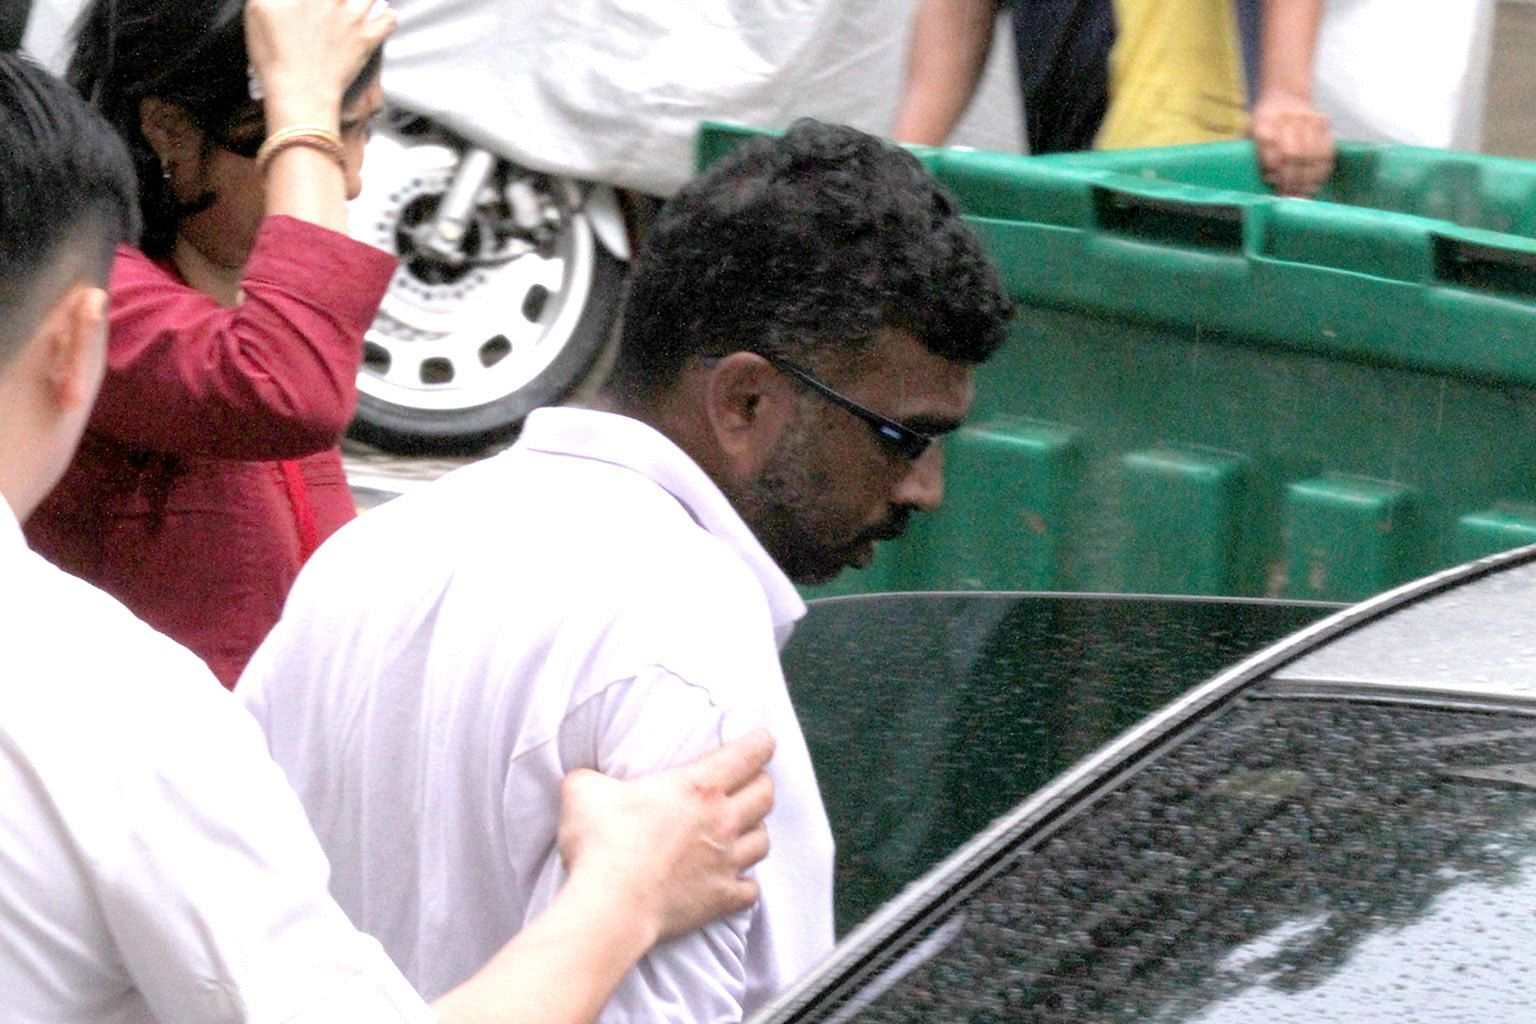 P. Mageswaran being escorted to the scene of the crime by police on Dec 23, 2013. He was spared life imprisonment as his case did not fall within the worst type of culpable homicide cases that deserved the maximum sentence.